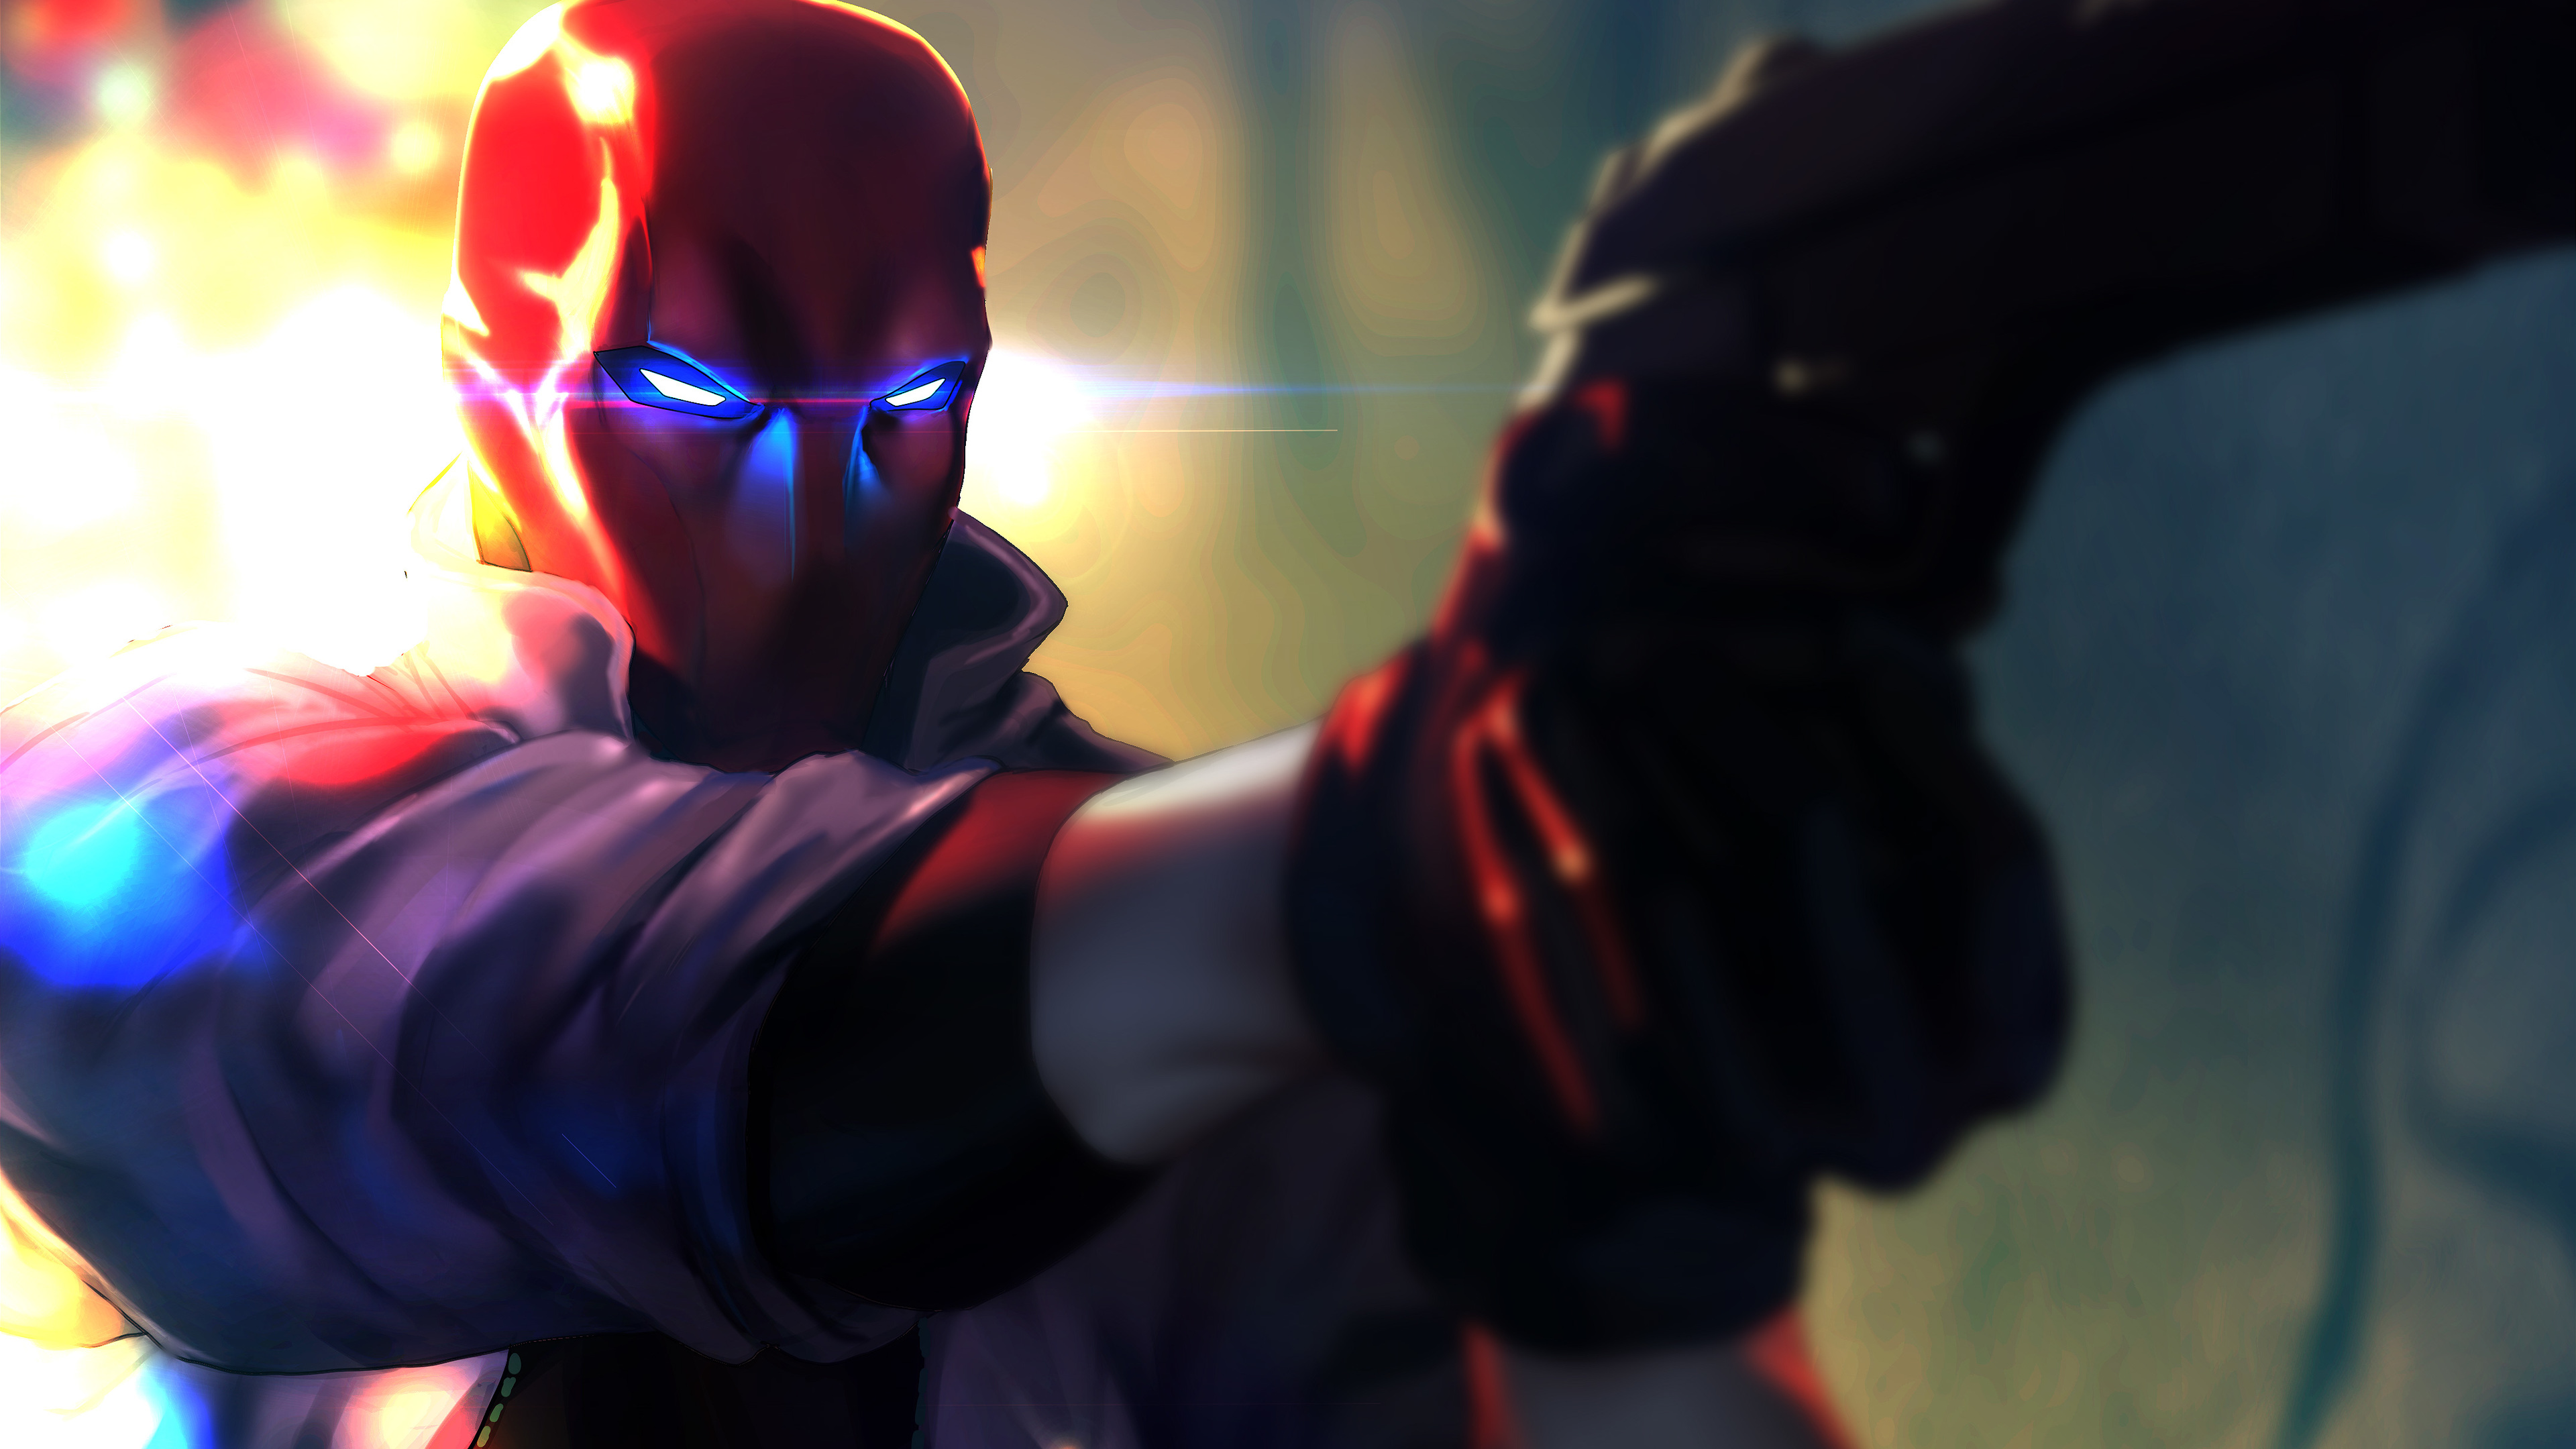 jason todd as redhood 1536522605 - Jason Todd As Redhood - superheroes wallpapers, red hood wallpapers, hd-wallpapers, digital art wallpapers, deviantart wallpapers, artwork wallpapers, artist wallpapers, 5k wallpapers, 4k-wallpapers